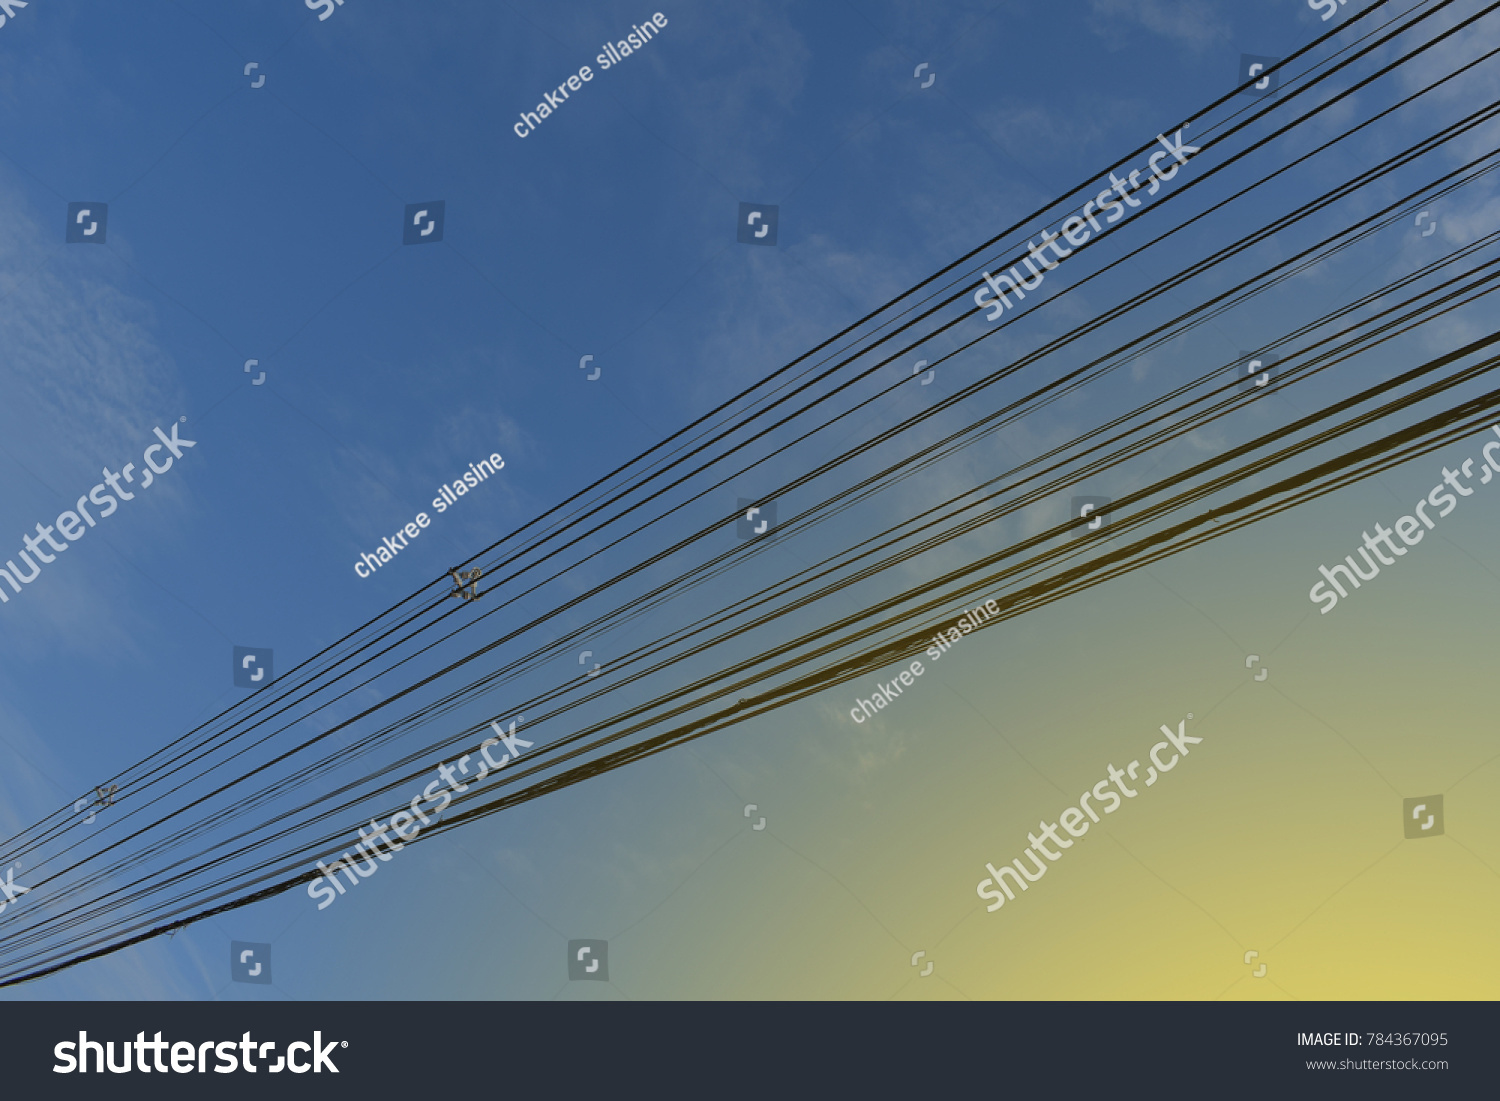 hight resolution of high voltage cables and phone lines head down through the blue sky to send electricity